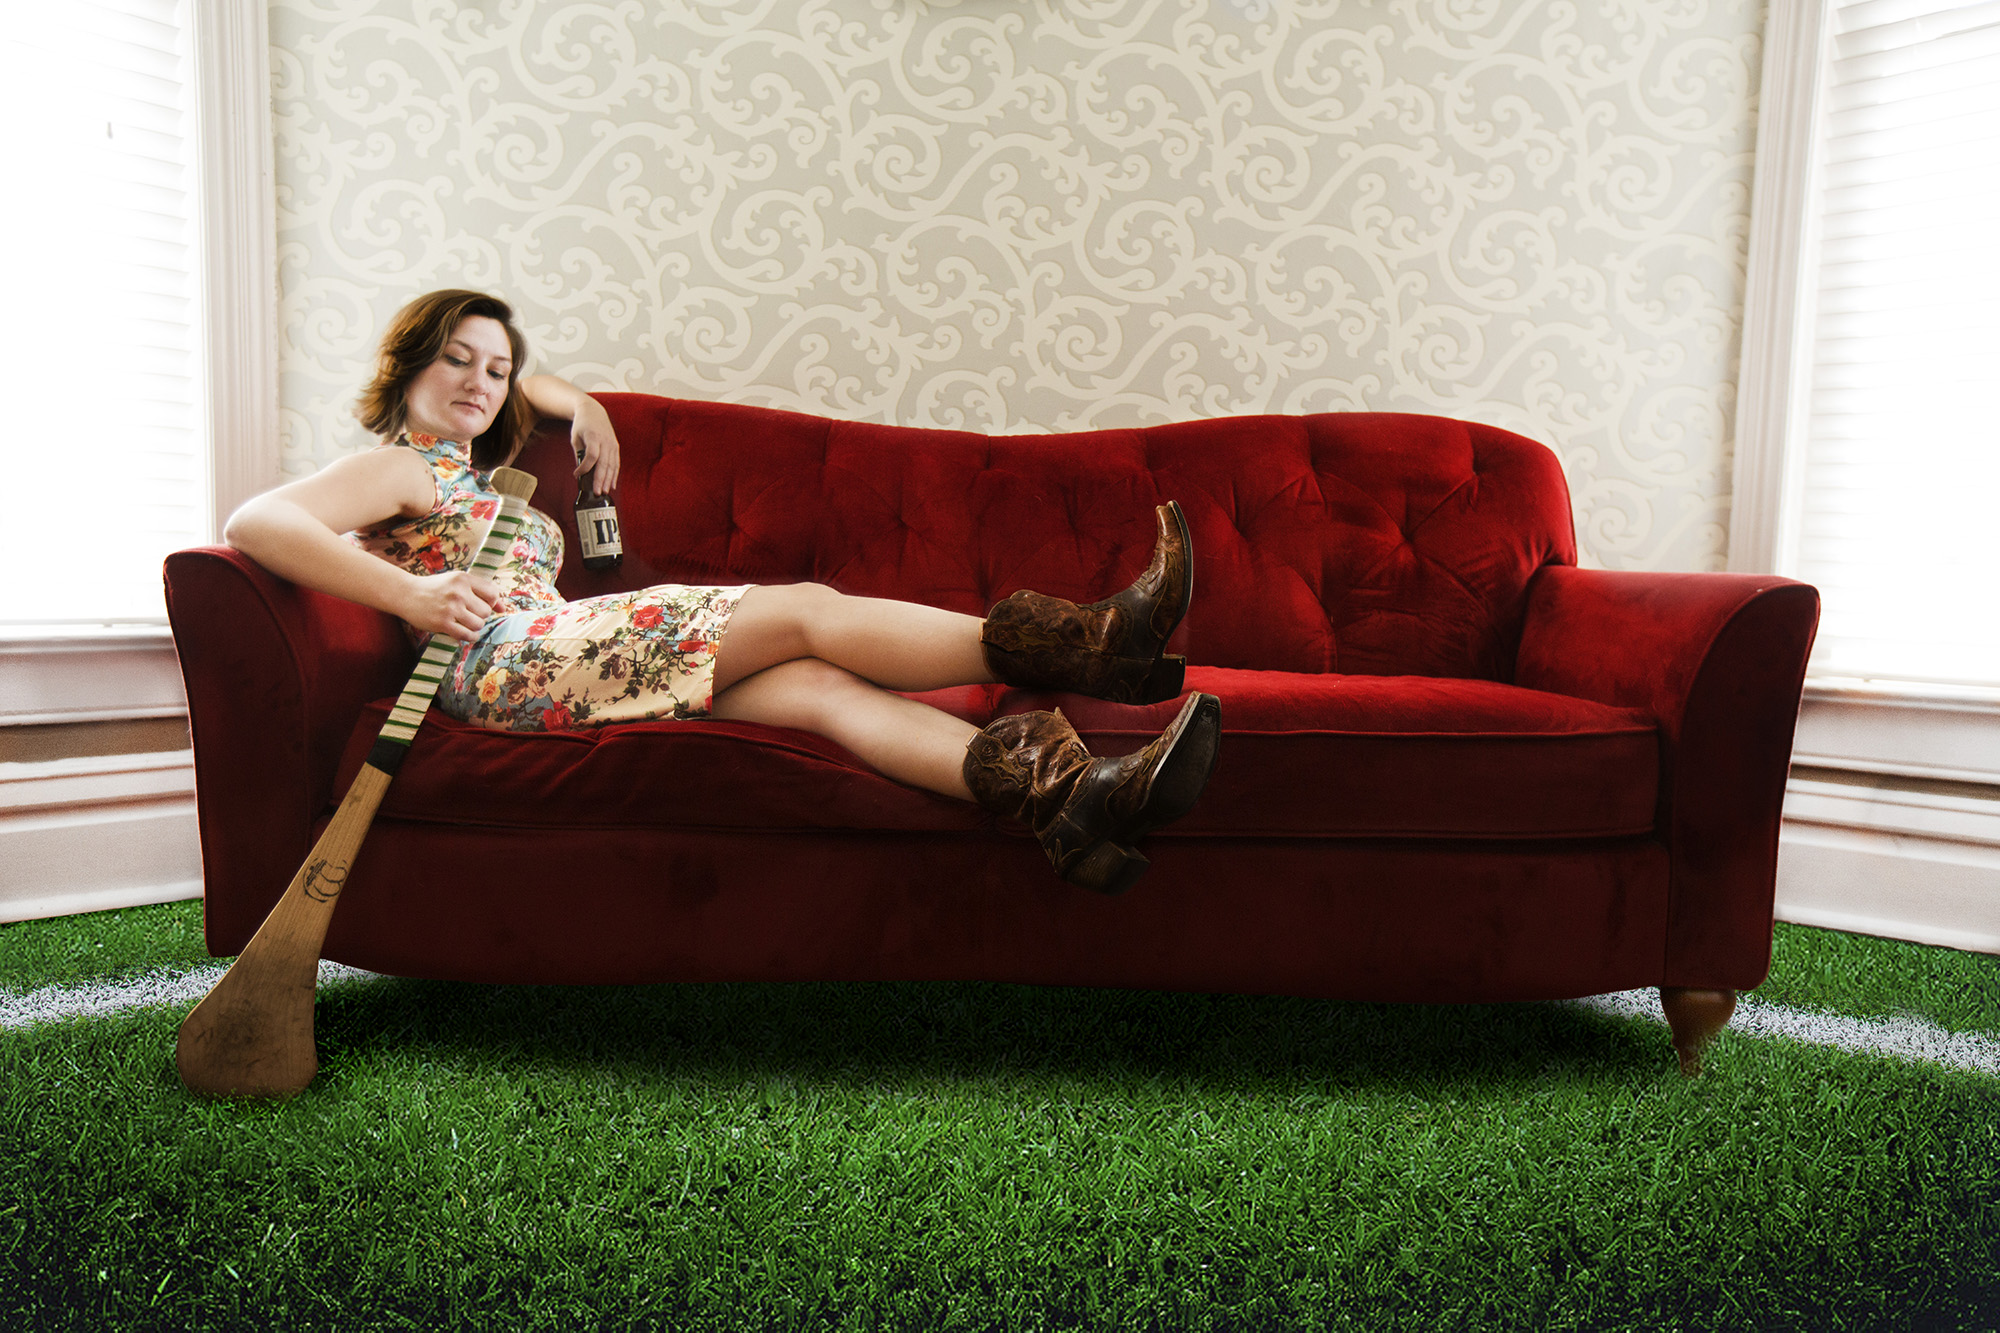 1-girl-on-couch2.jpg